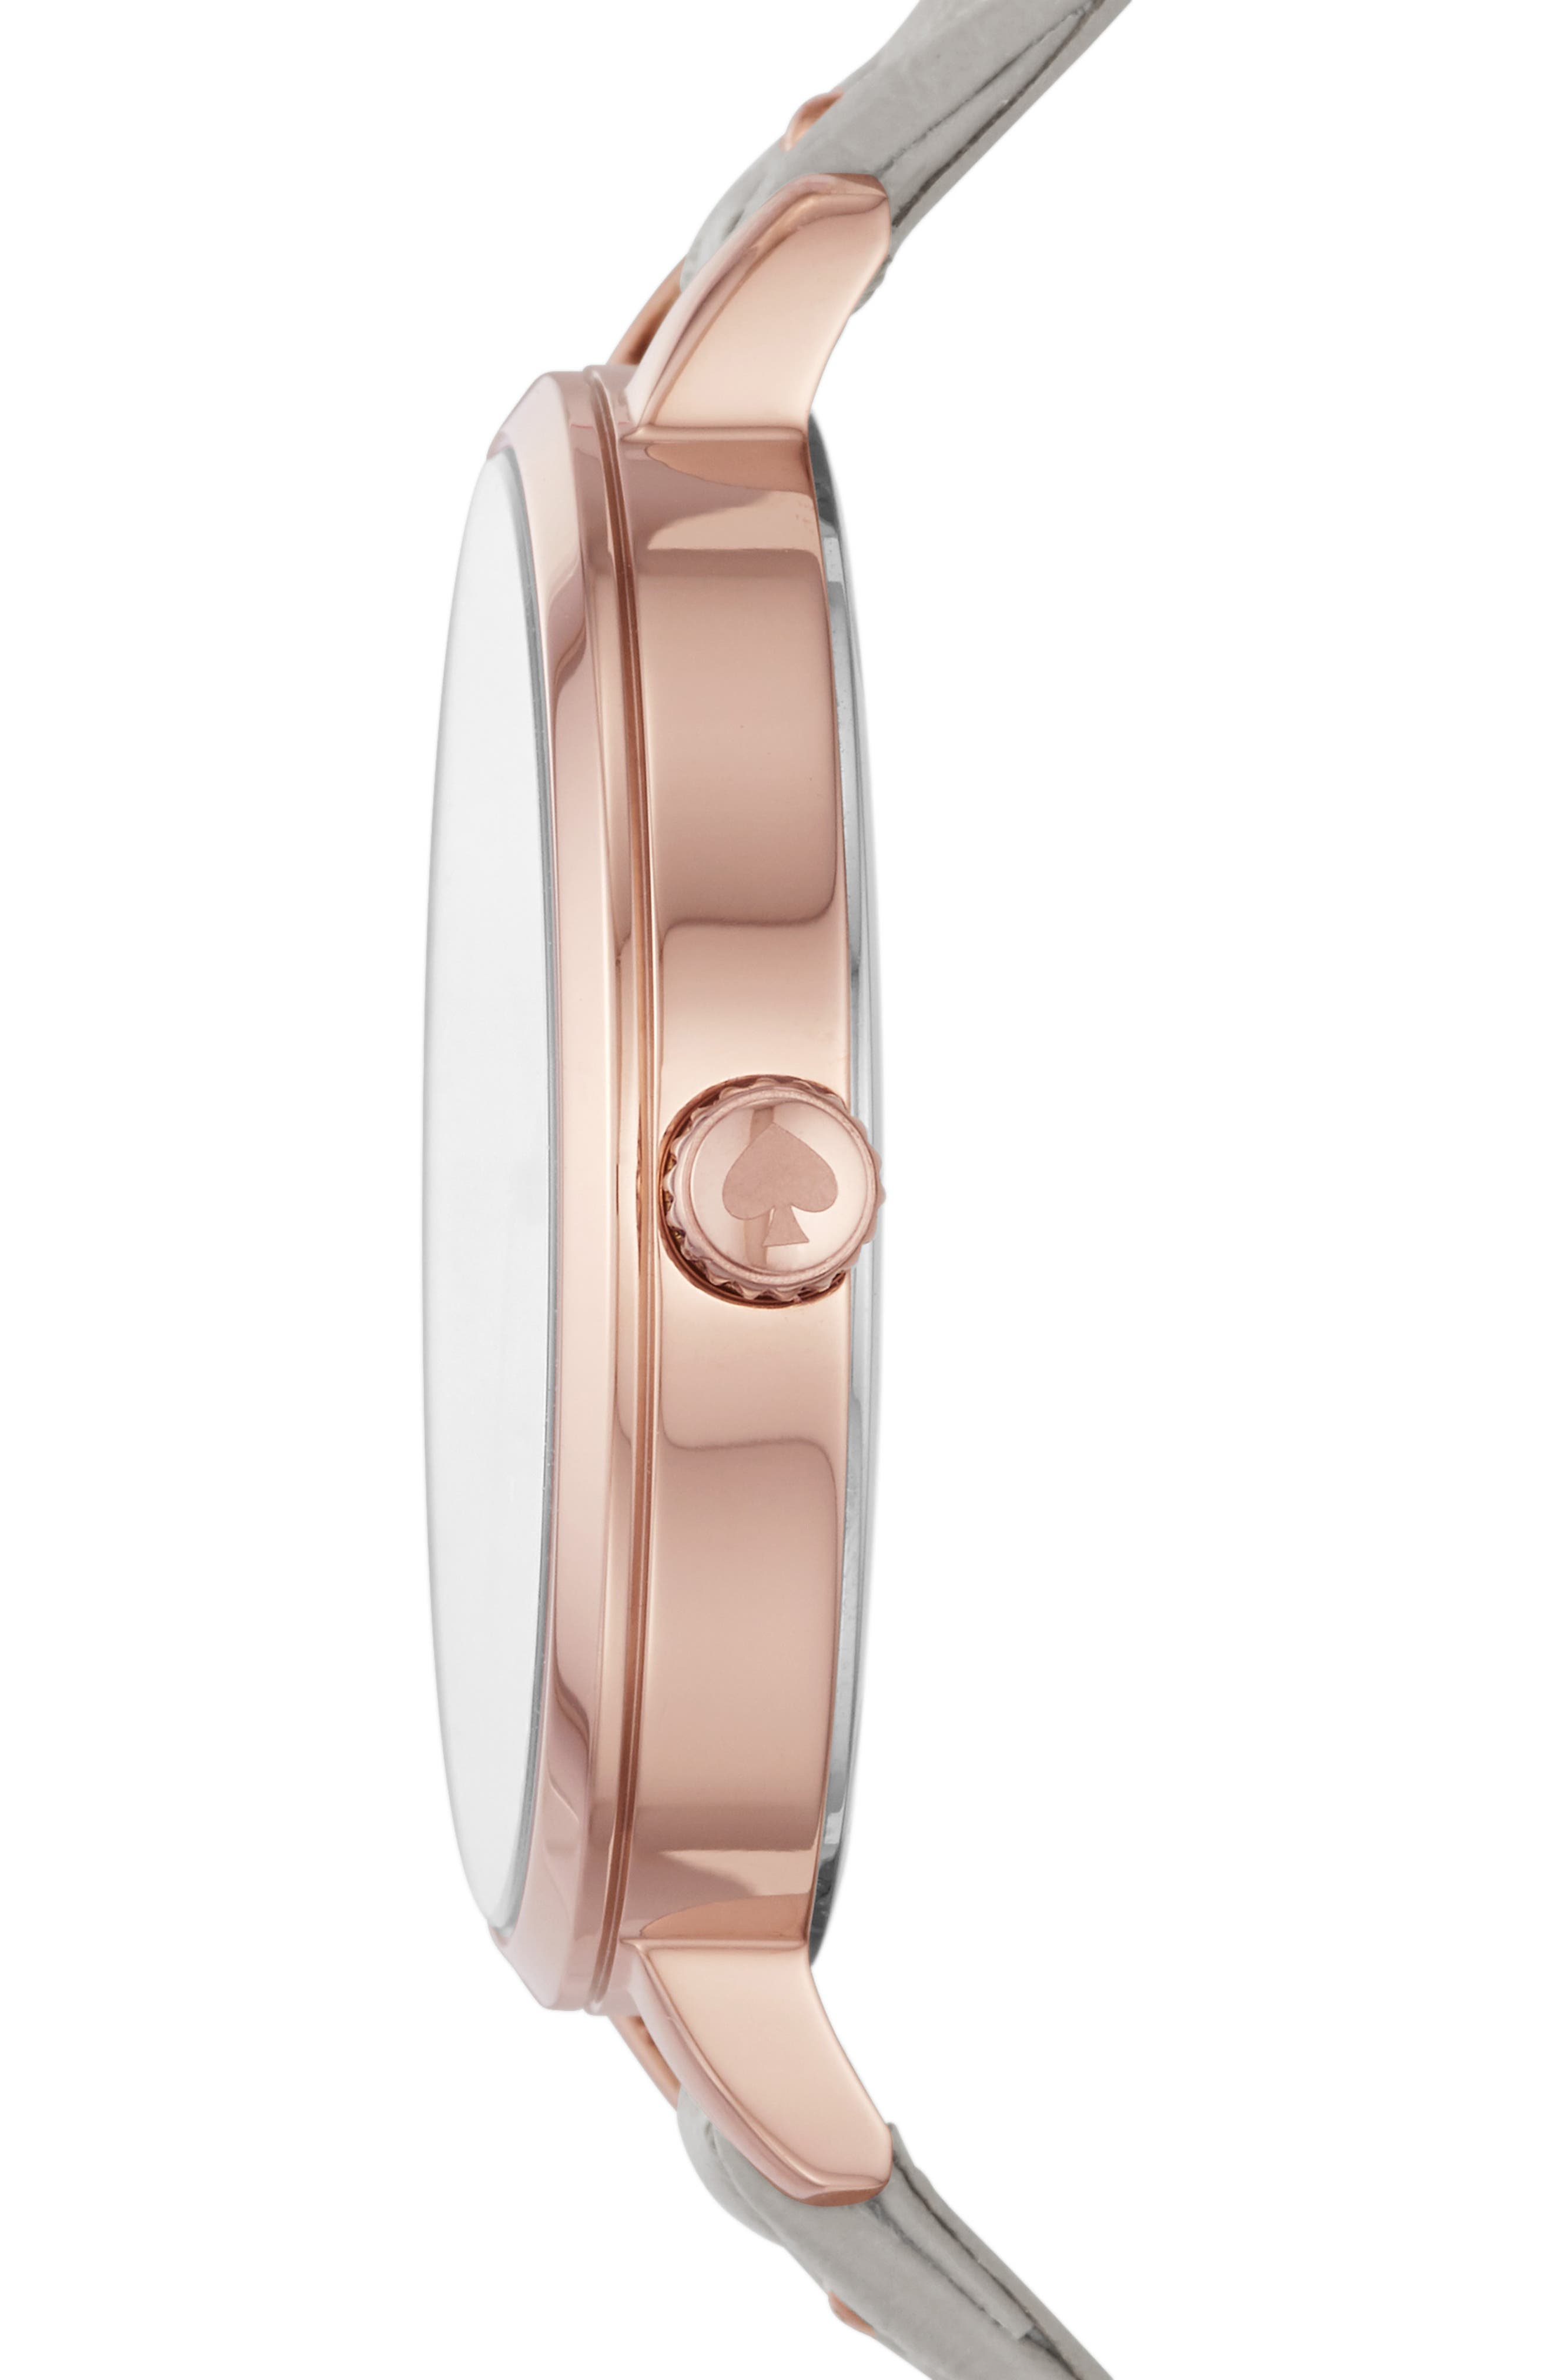 KATE SPADE NEW YORK, metro leather strap watch, 34mm, Alternate thumbnail 2, color, GREY/ MOP/ ROSE GOLD